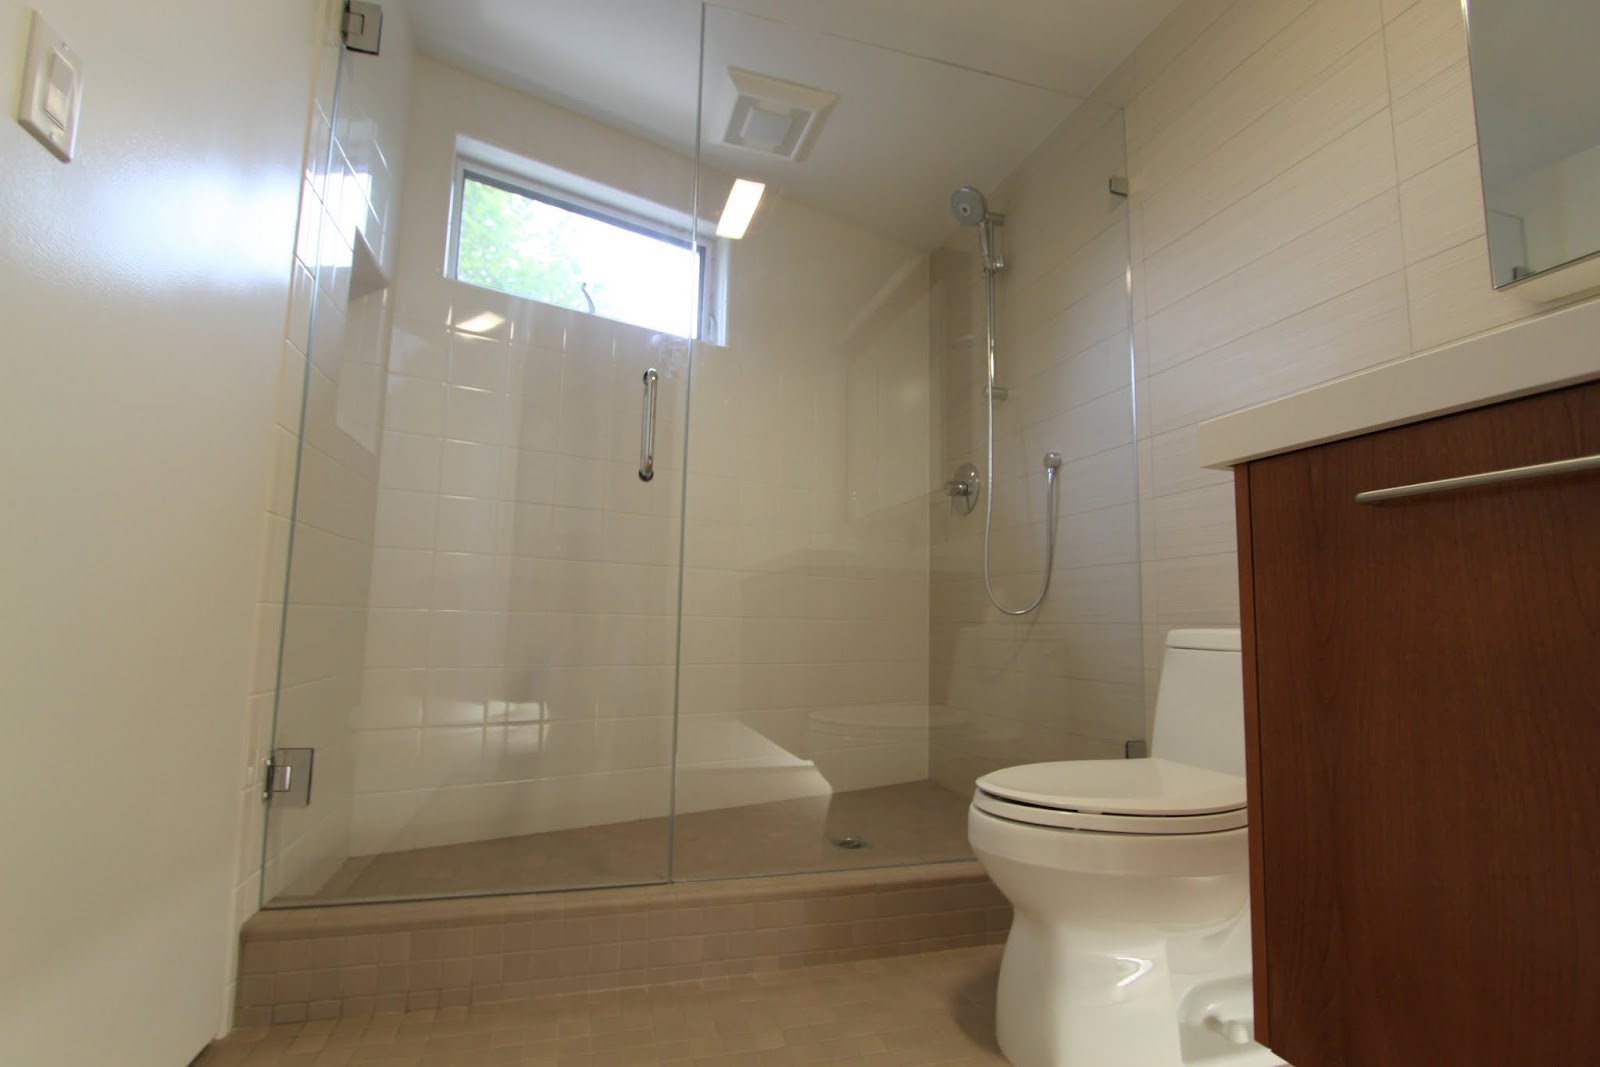 Shower Doors And Paint In Mid Century Modern Bathroom